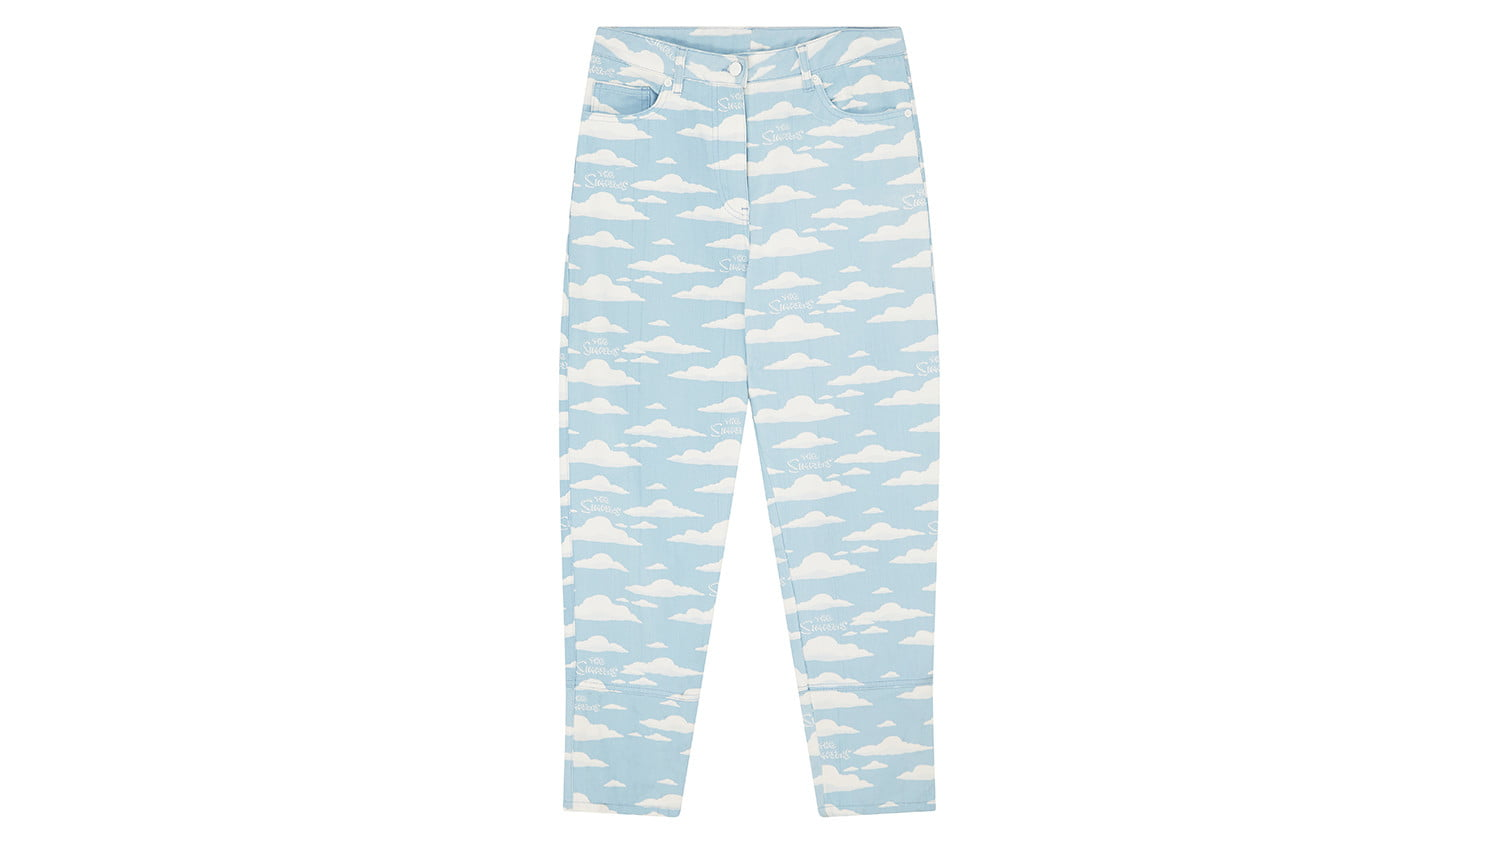 asos x the simpsons collection bluecloudpants